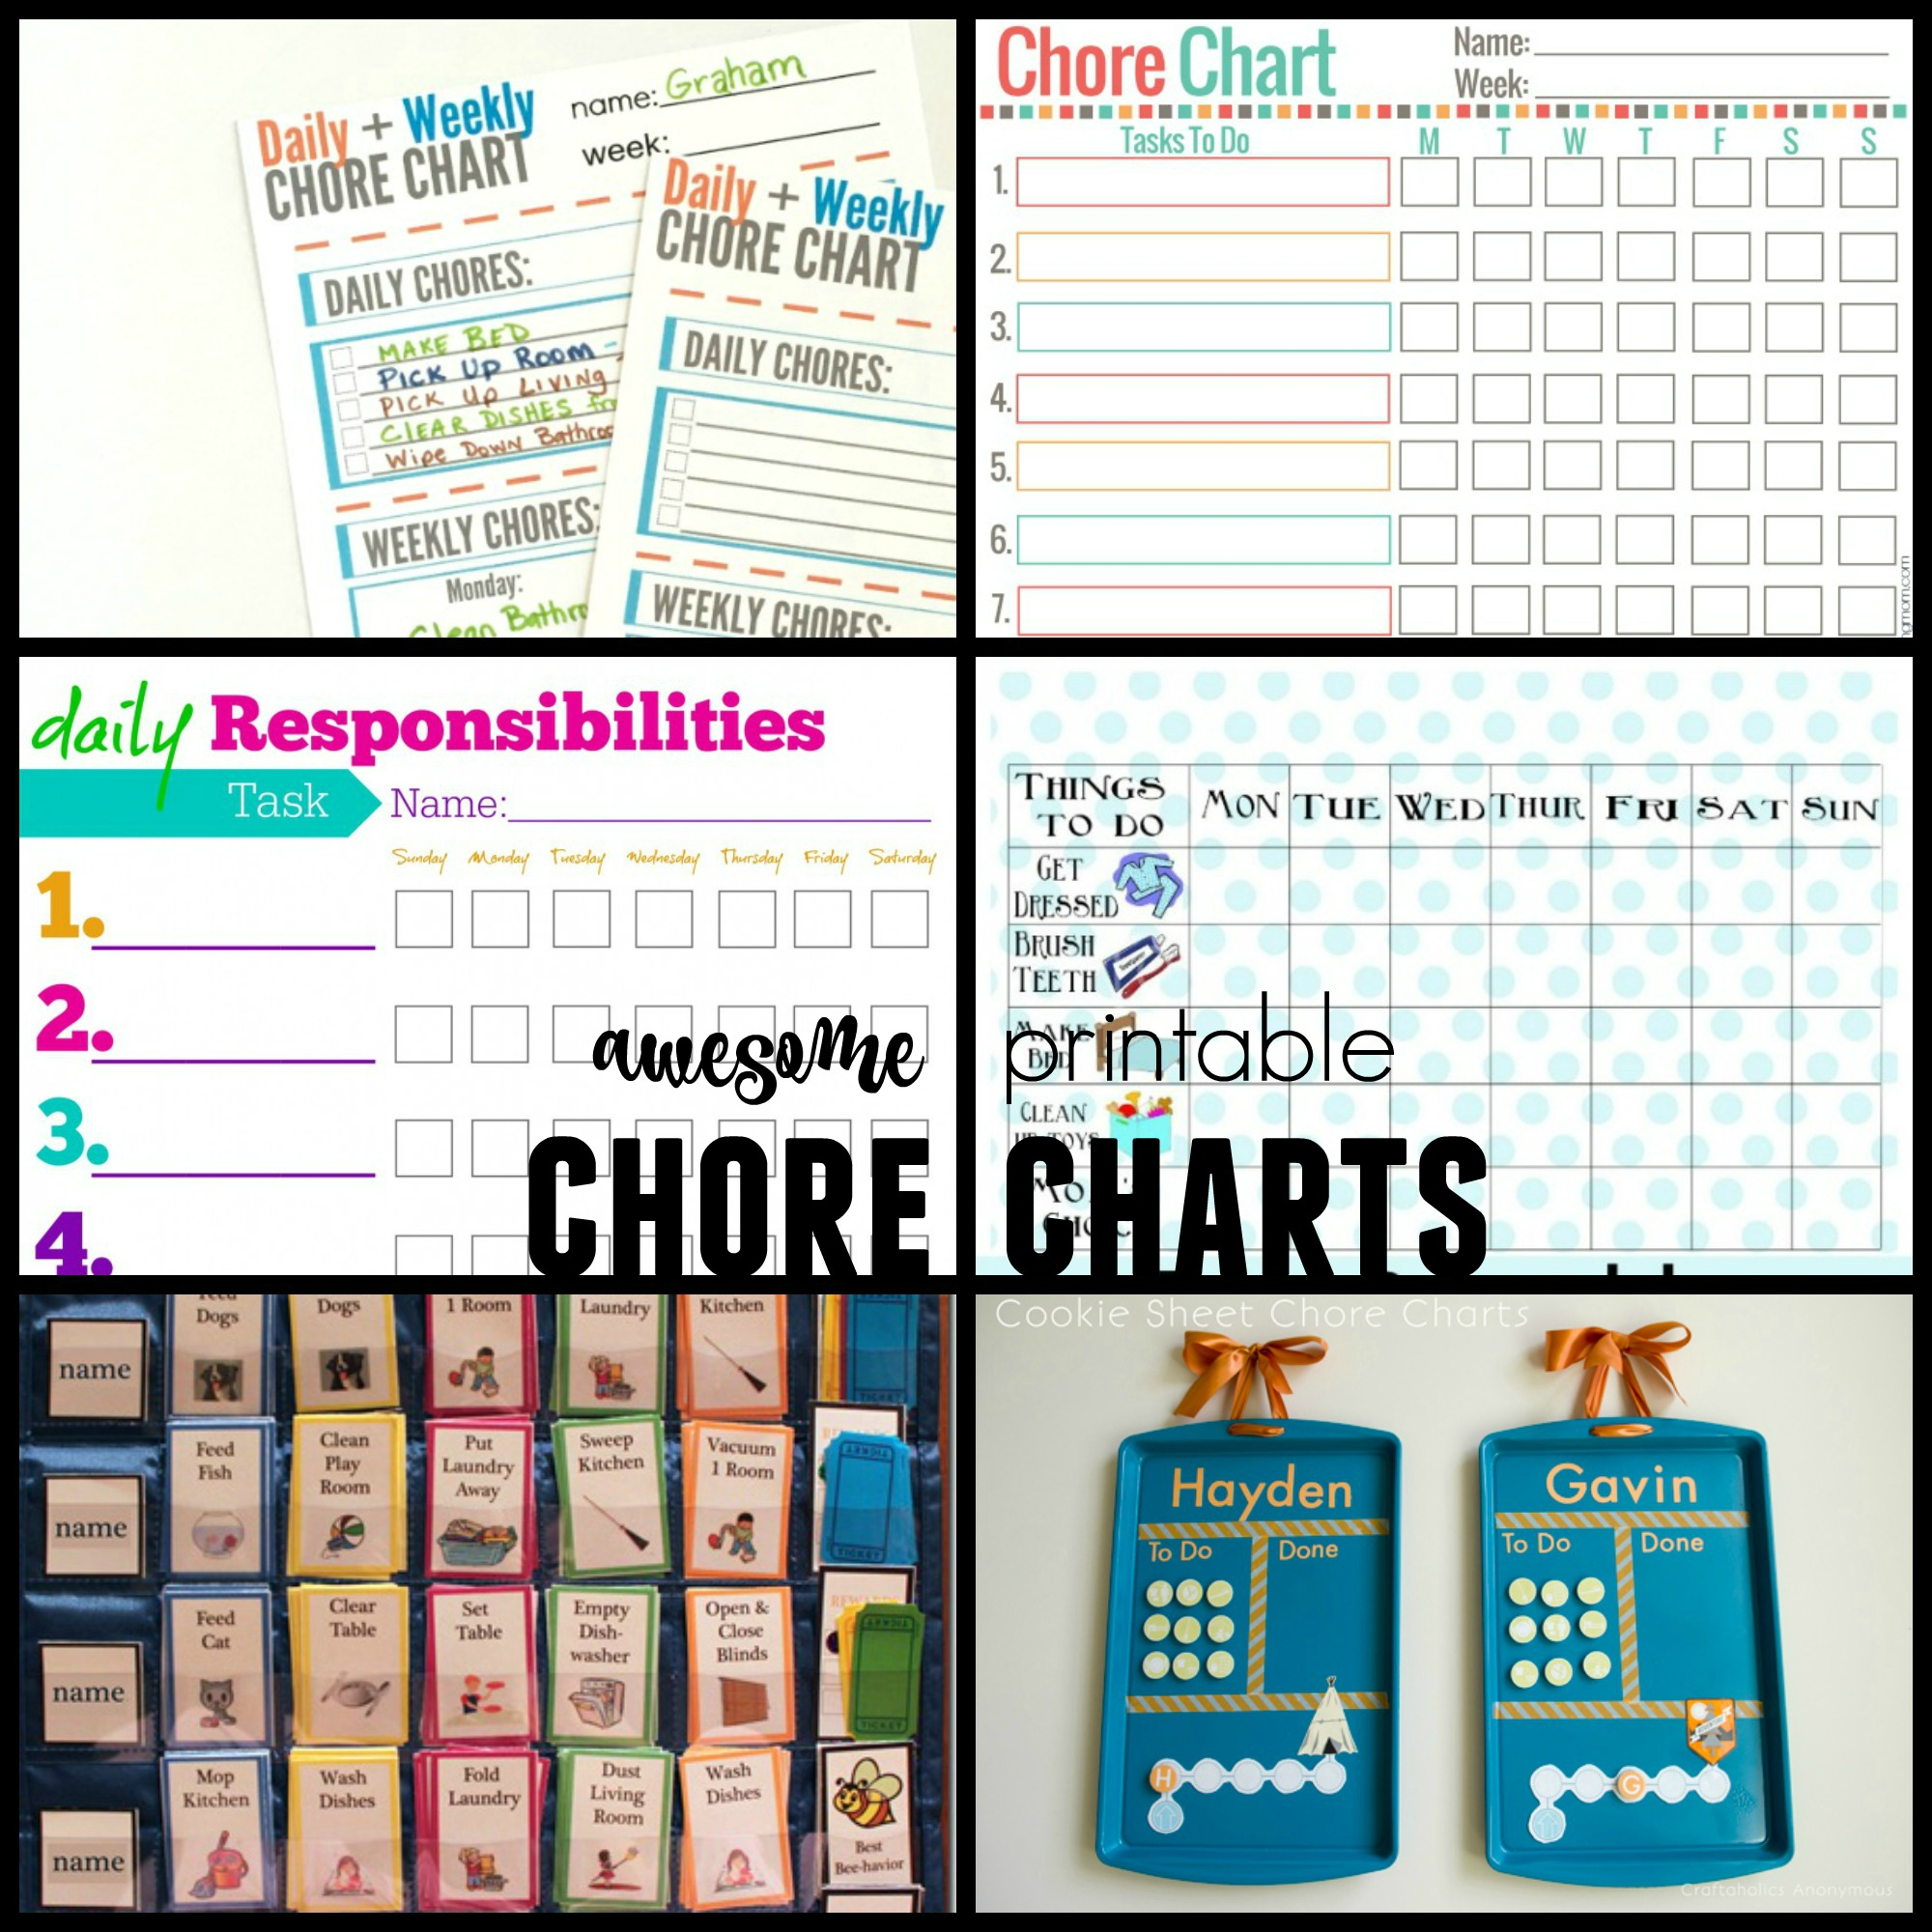 Chore Charts For Kids And Families  Progress Chart For Kids